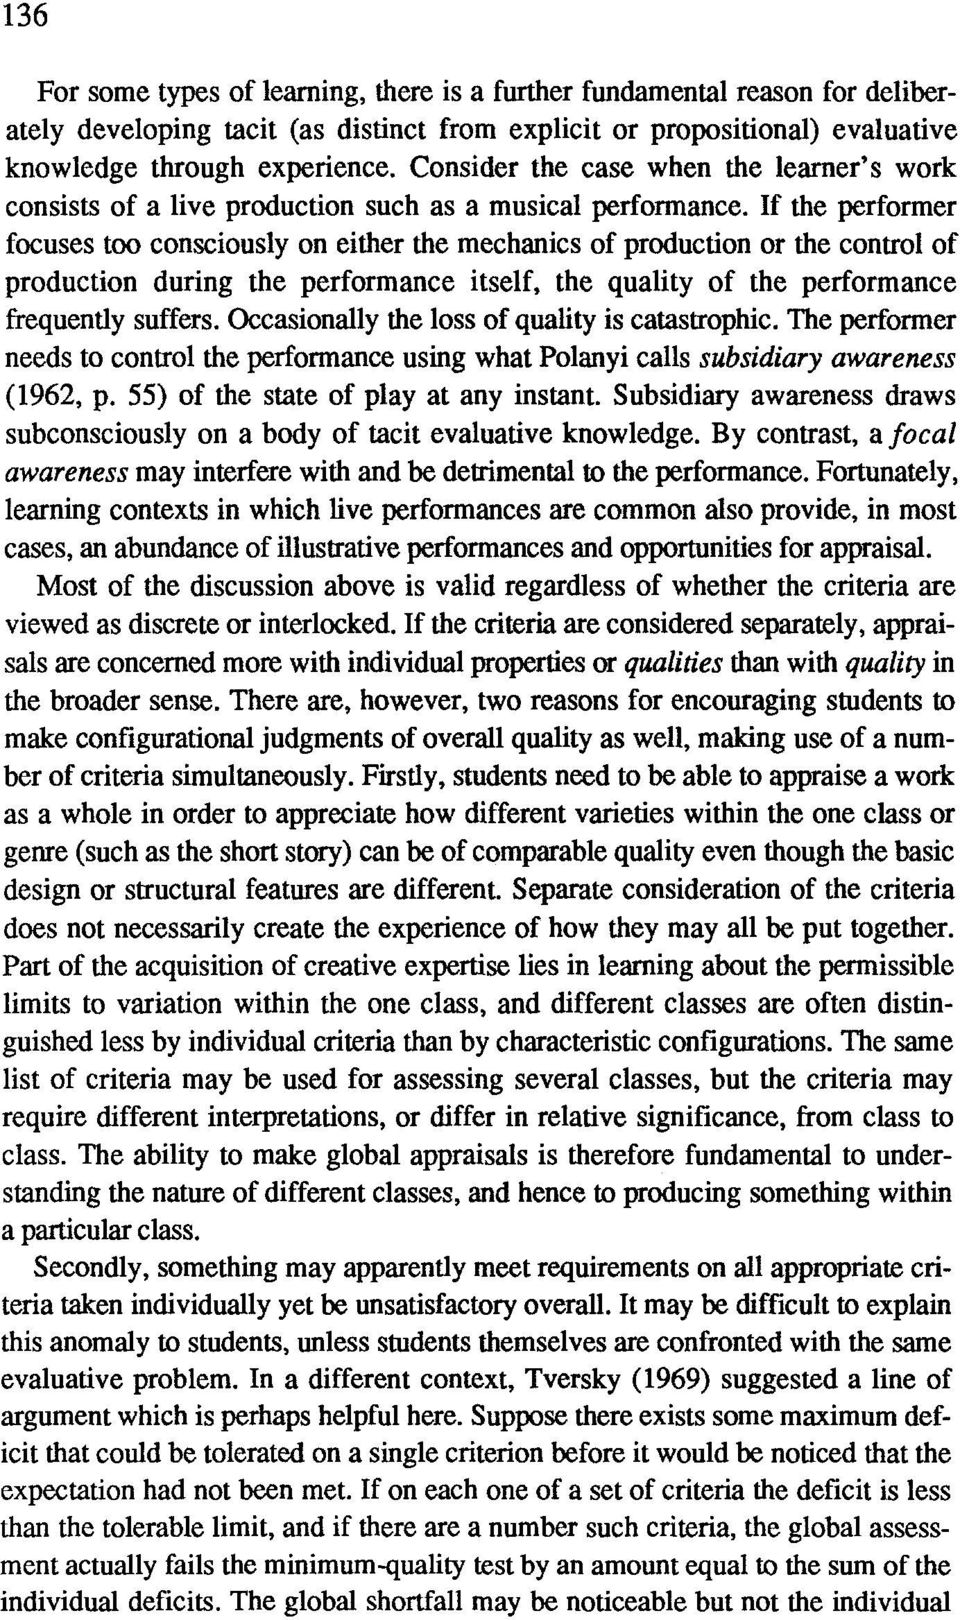 If the performer focuses too consciously on either the mechanics of production or the control of production during the performance itself, the quality of the performance frequently suffers.